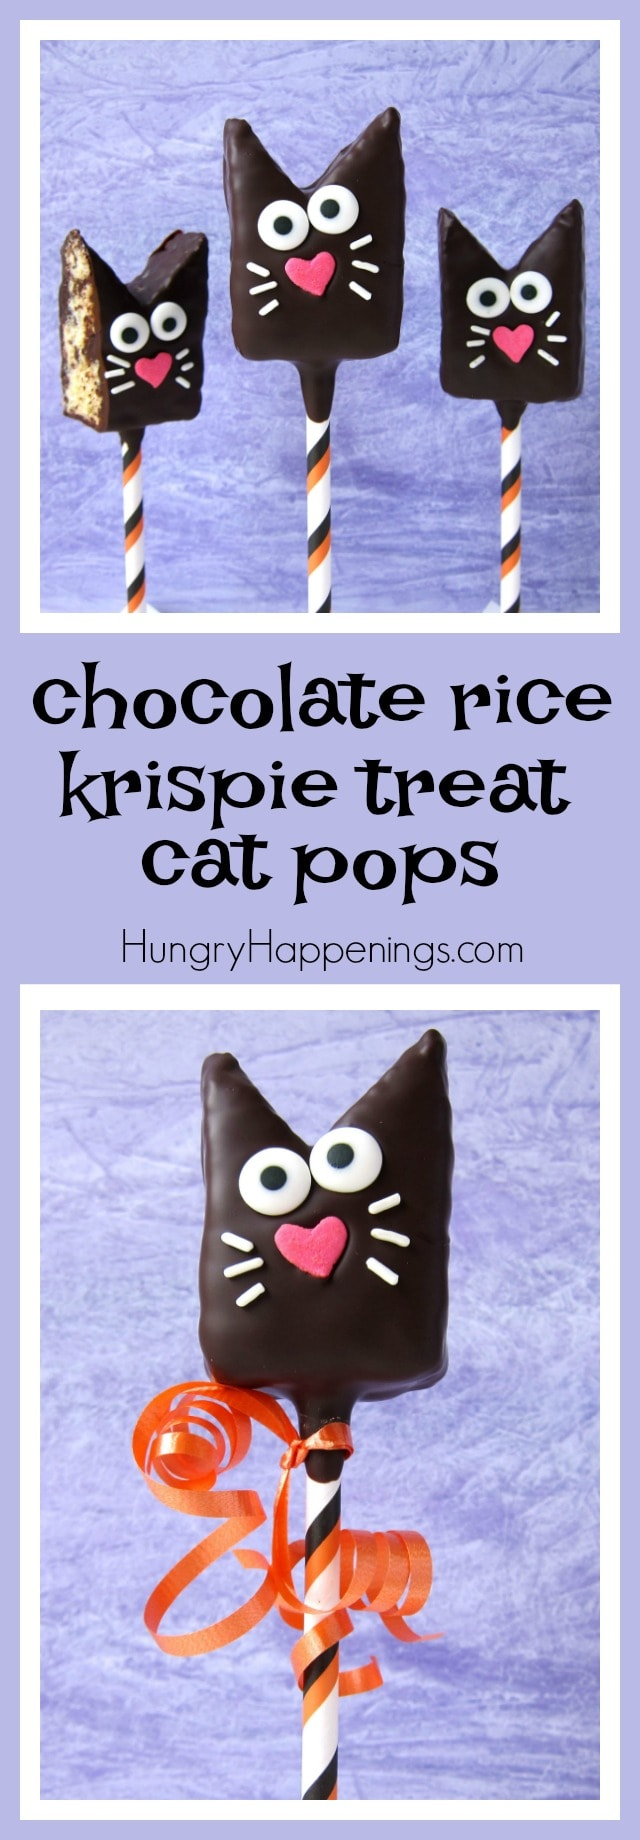 Want an adorably cute, incredibly tasty, and amazingly simple treat to make for Halloween? Then you'll got to make these Chocolate Rice Krispie Treat Cat Pops.